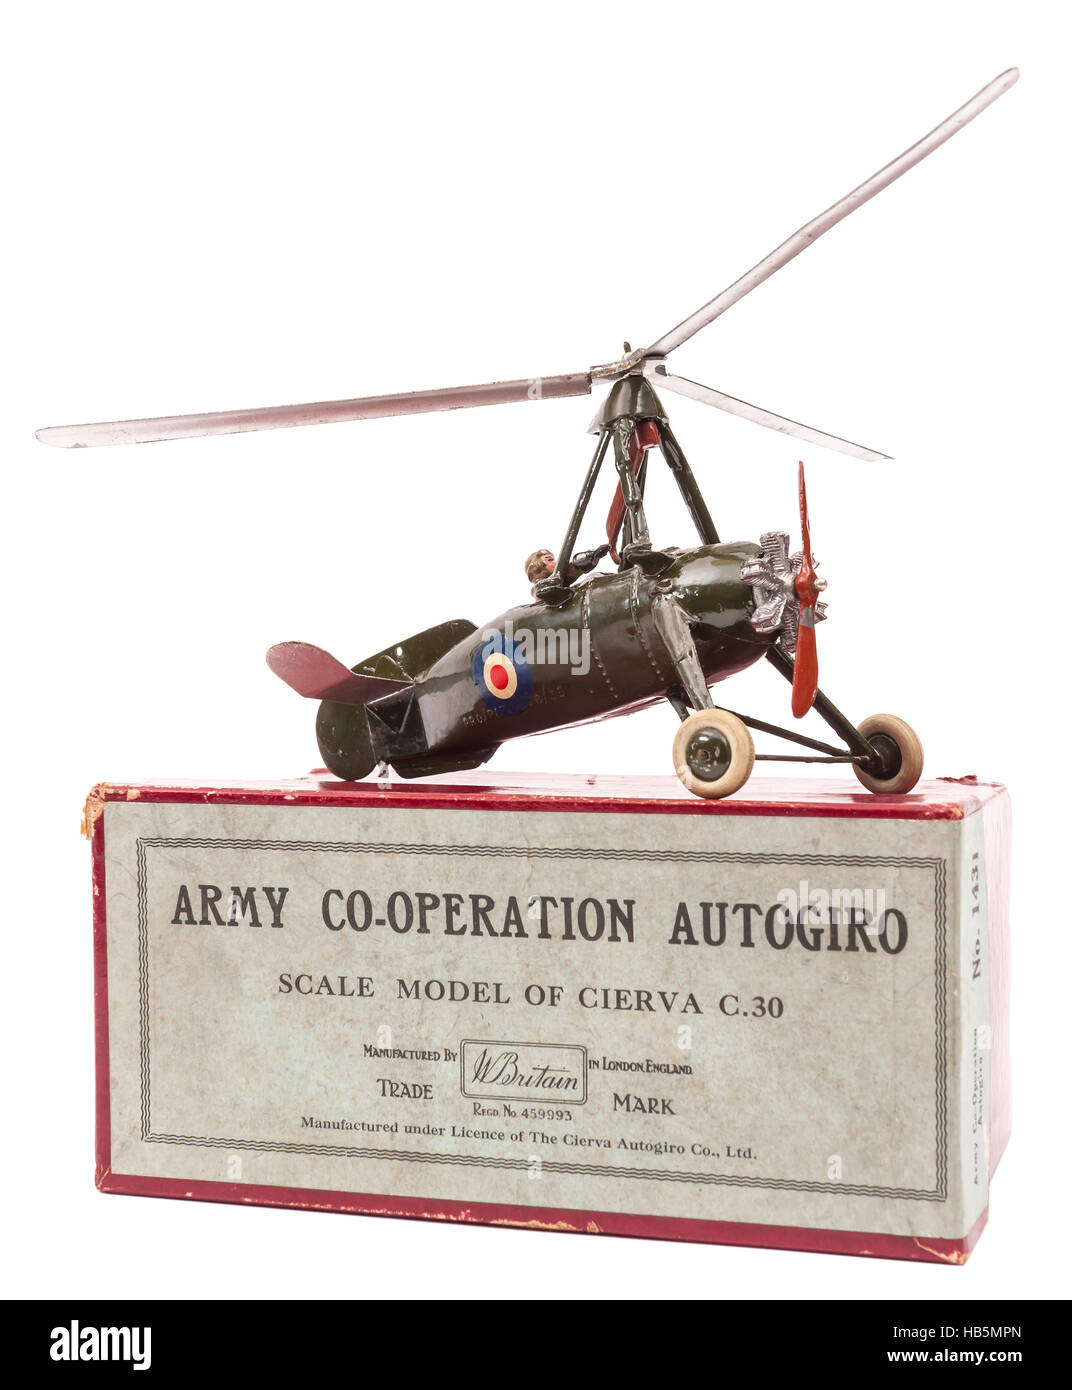 1950s Britain's Toys Army Co-operation Autogiro children's diecast metal toy - Stock Image